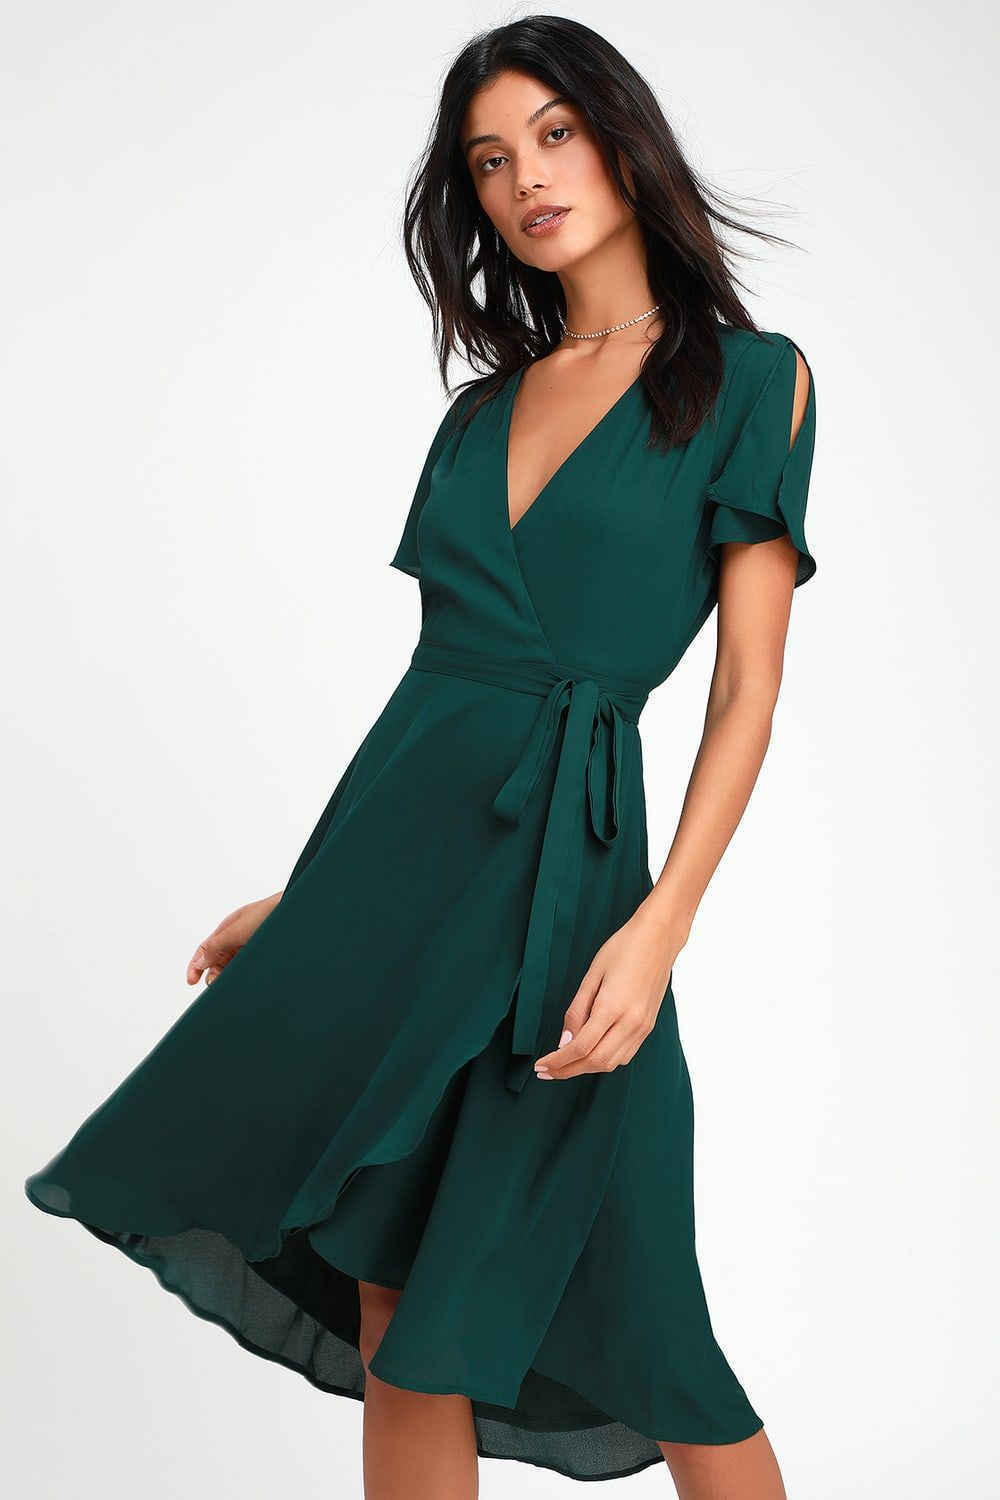 Rise to the Occasion Emerald Green Midi Wrap Dress (With ...